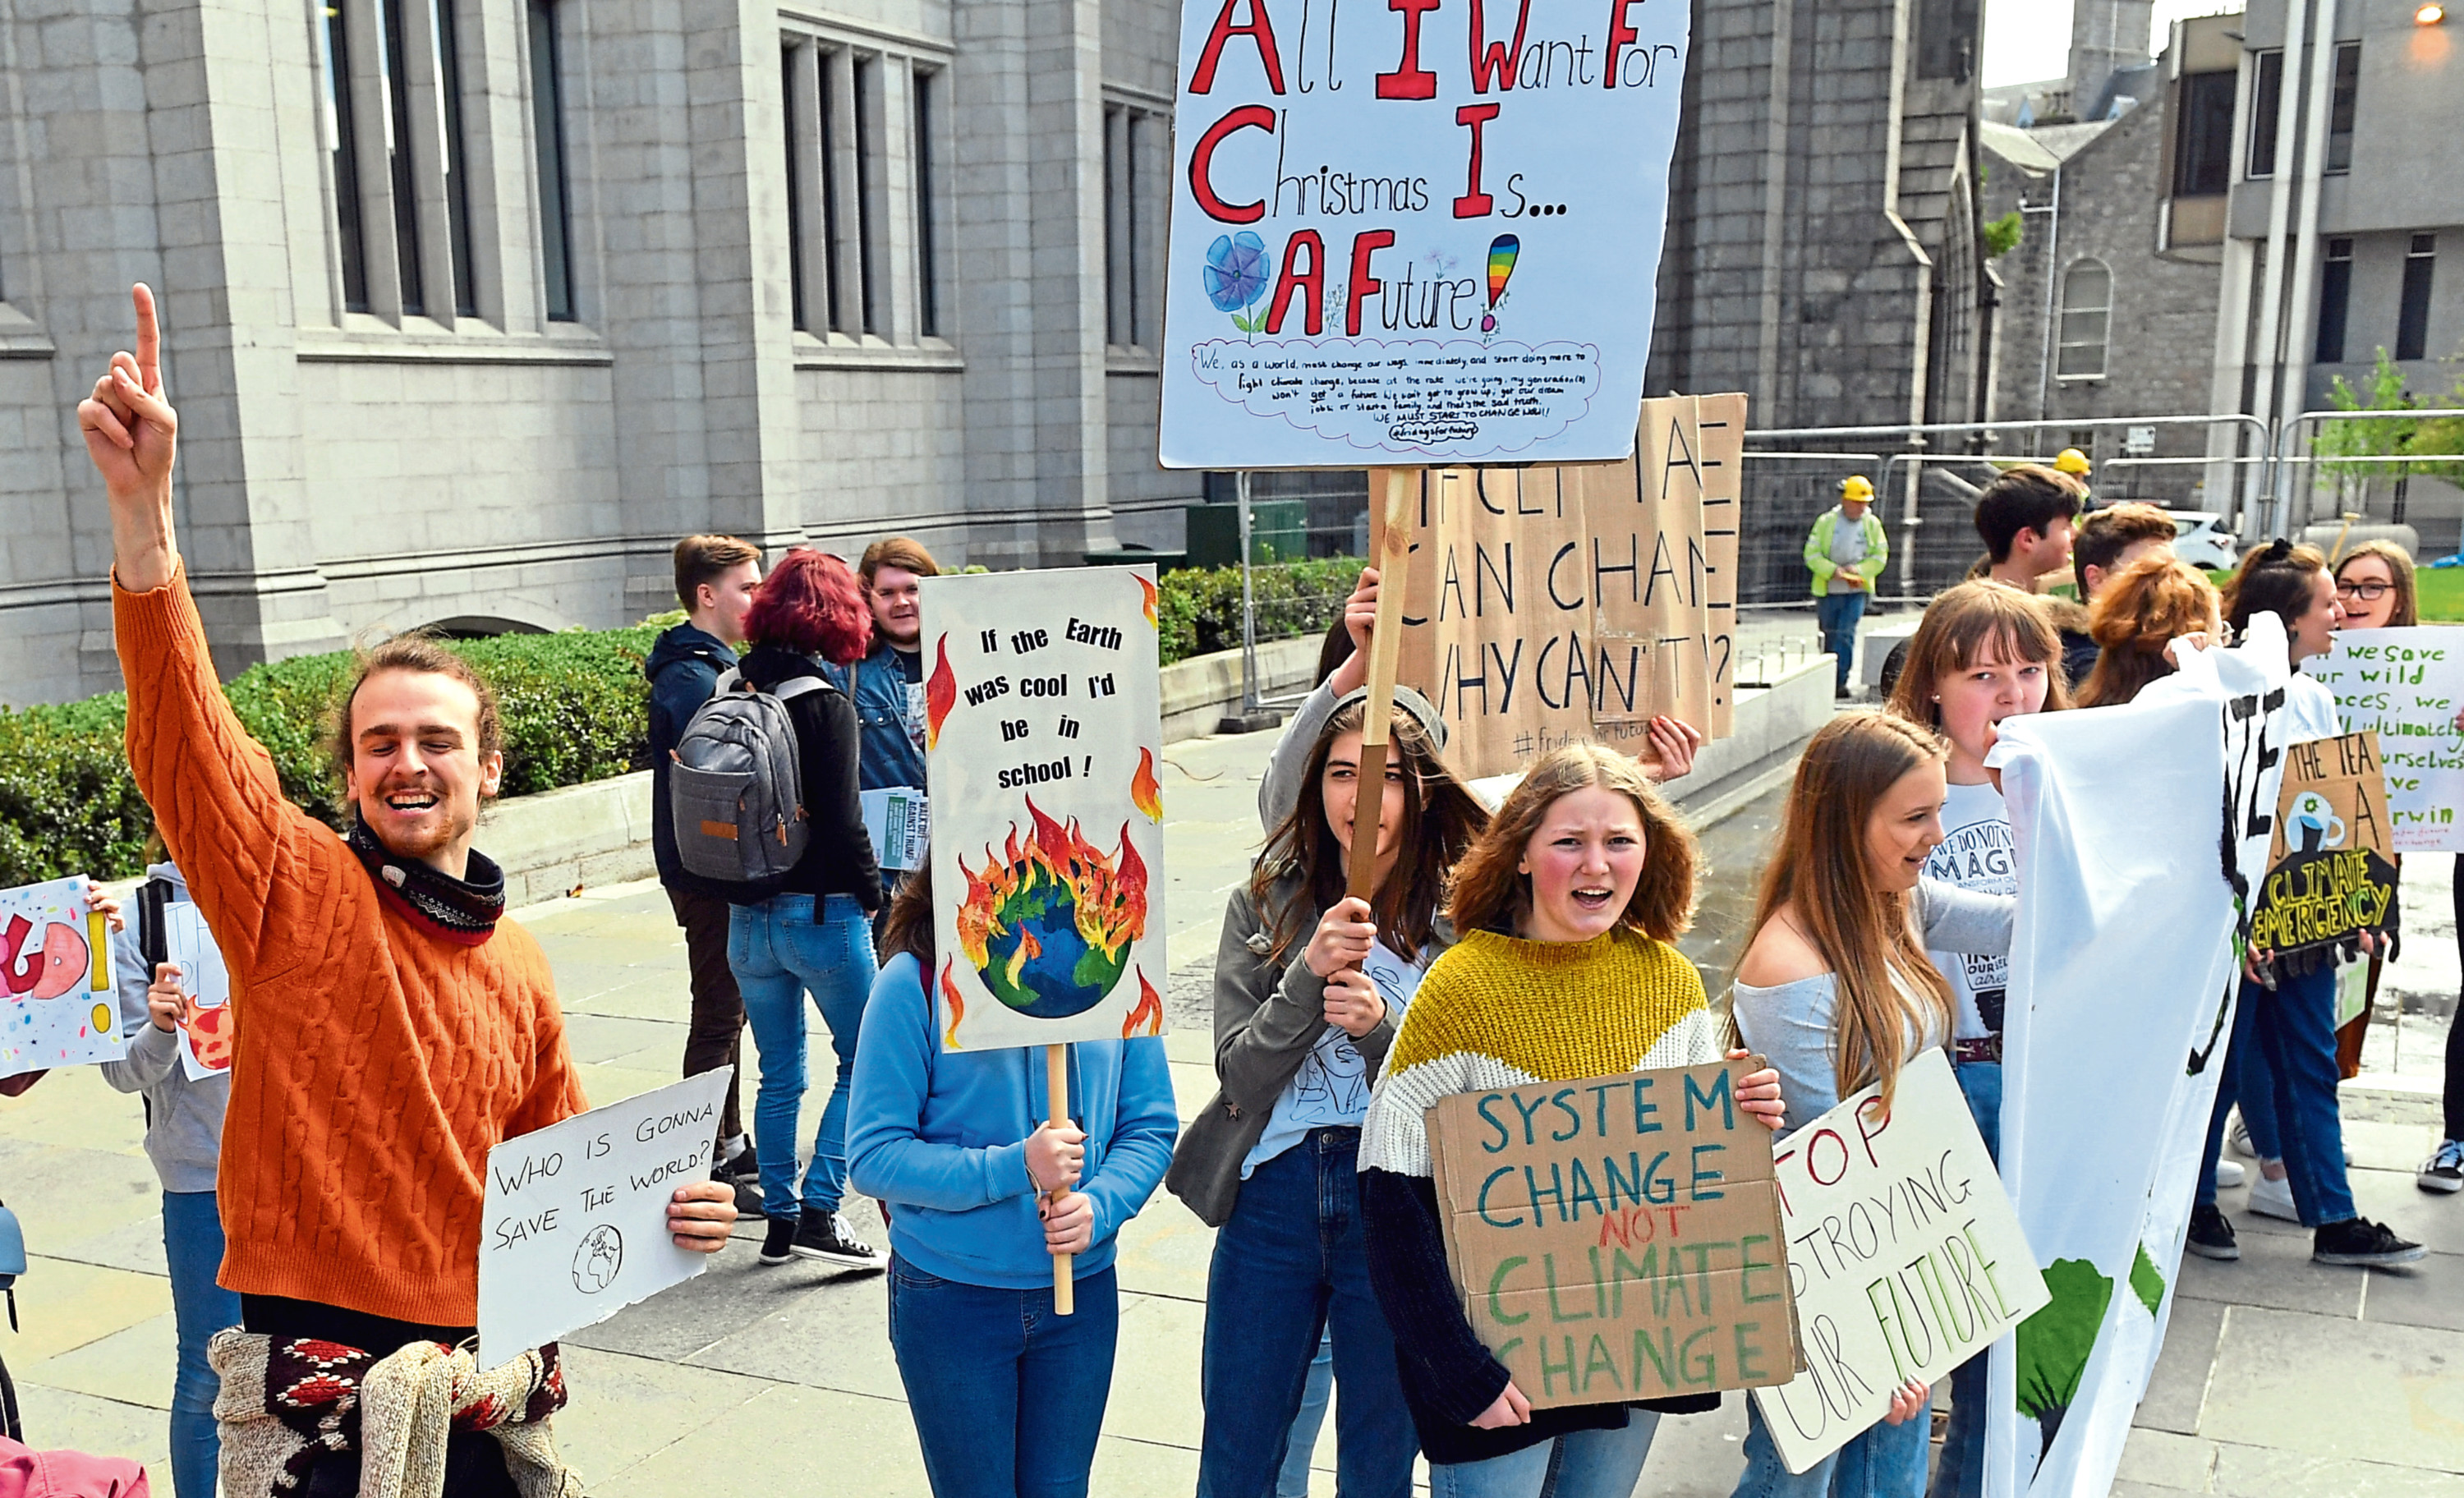 Students gathered in front of Marischal College to demand climate action.